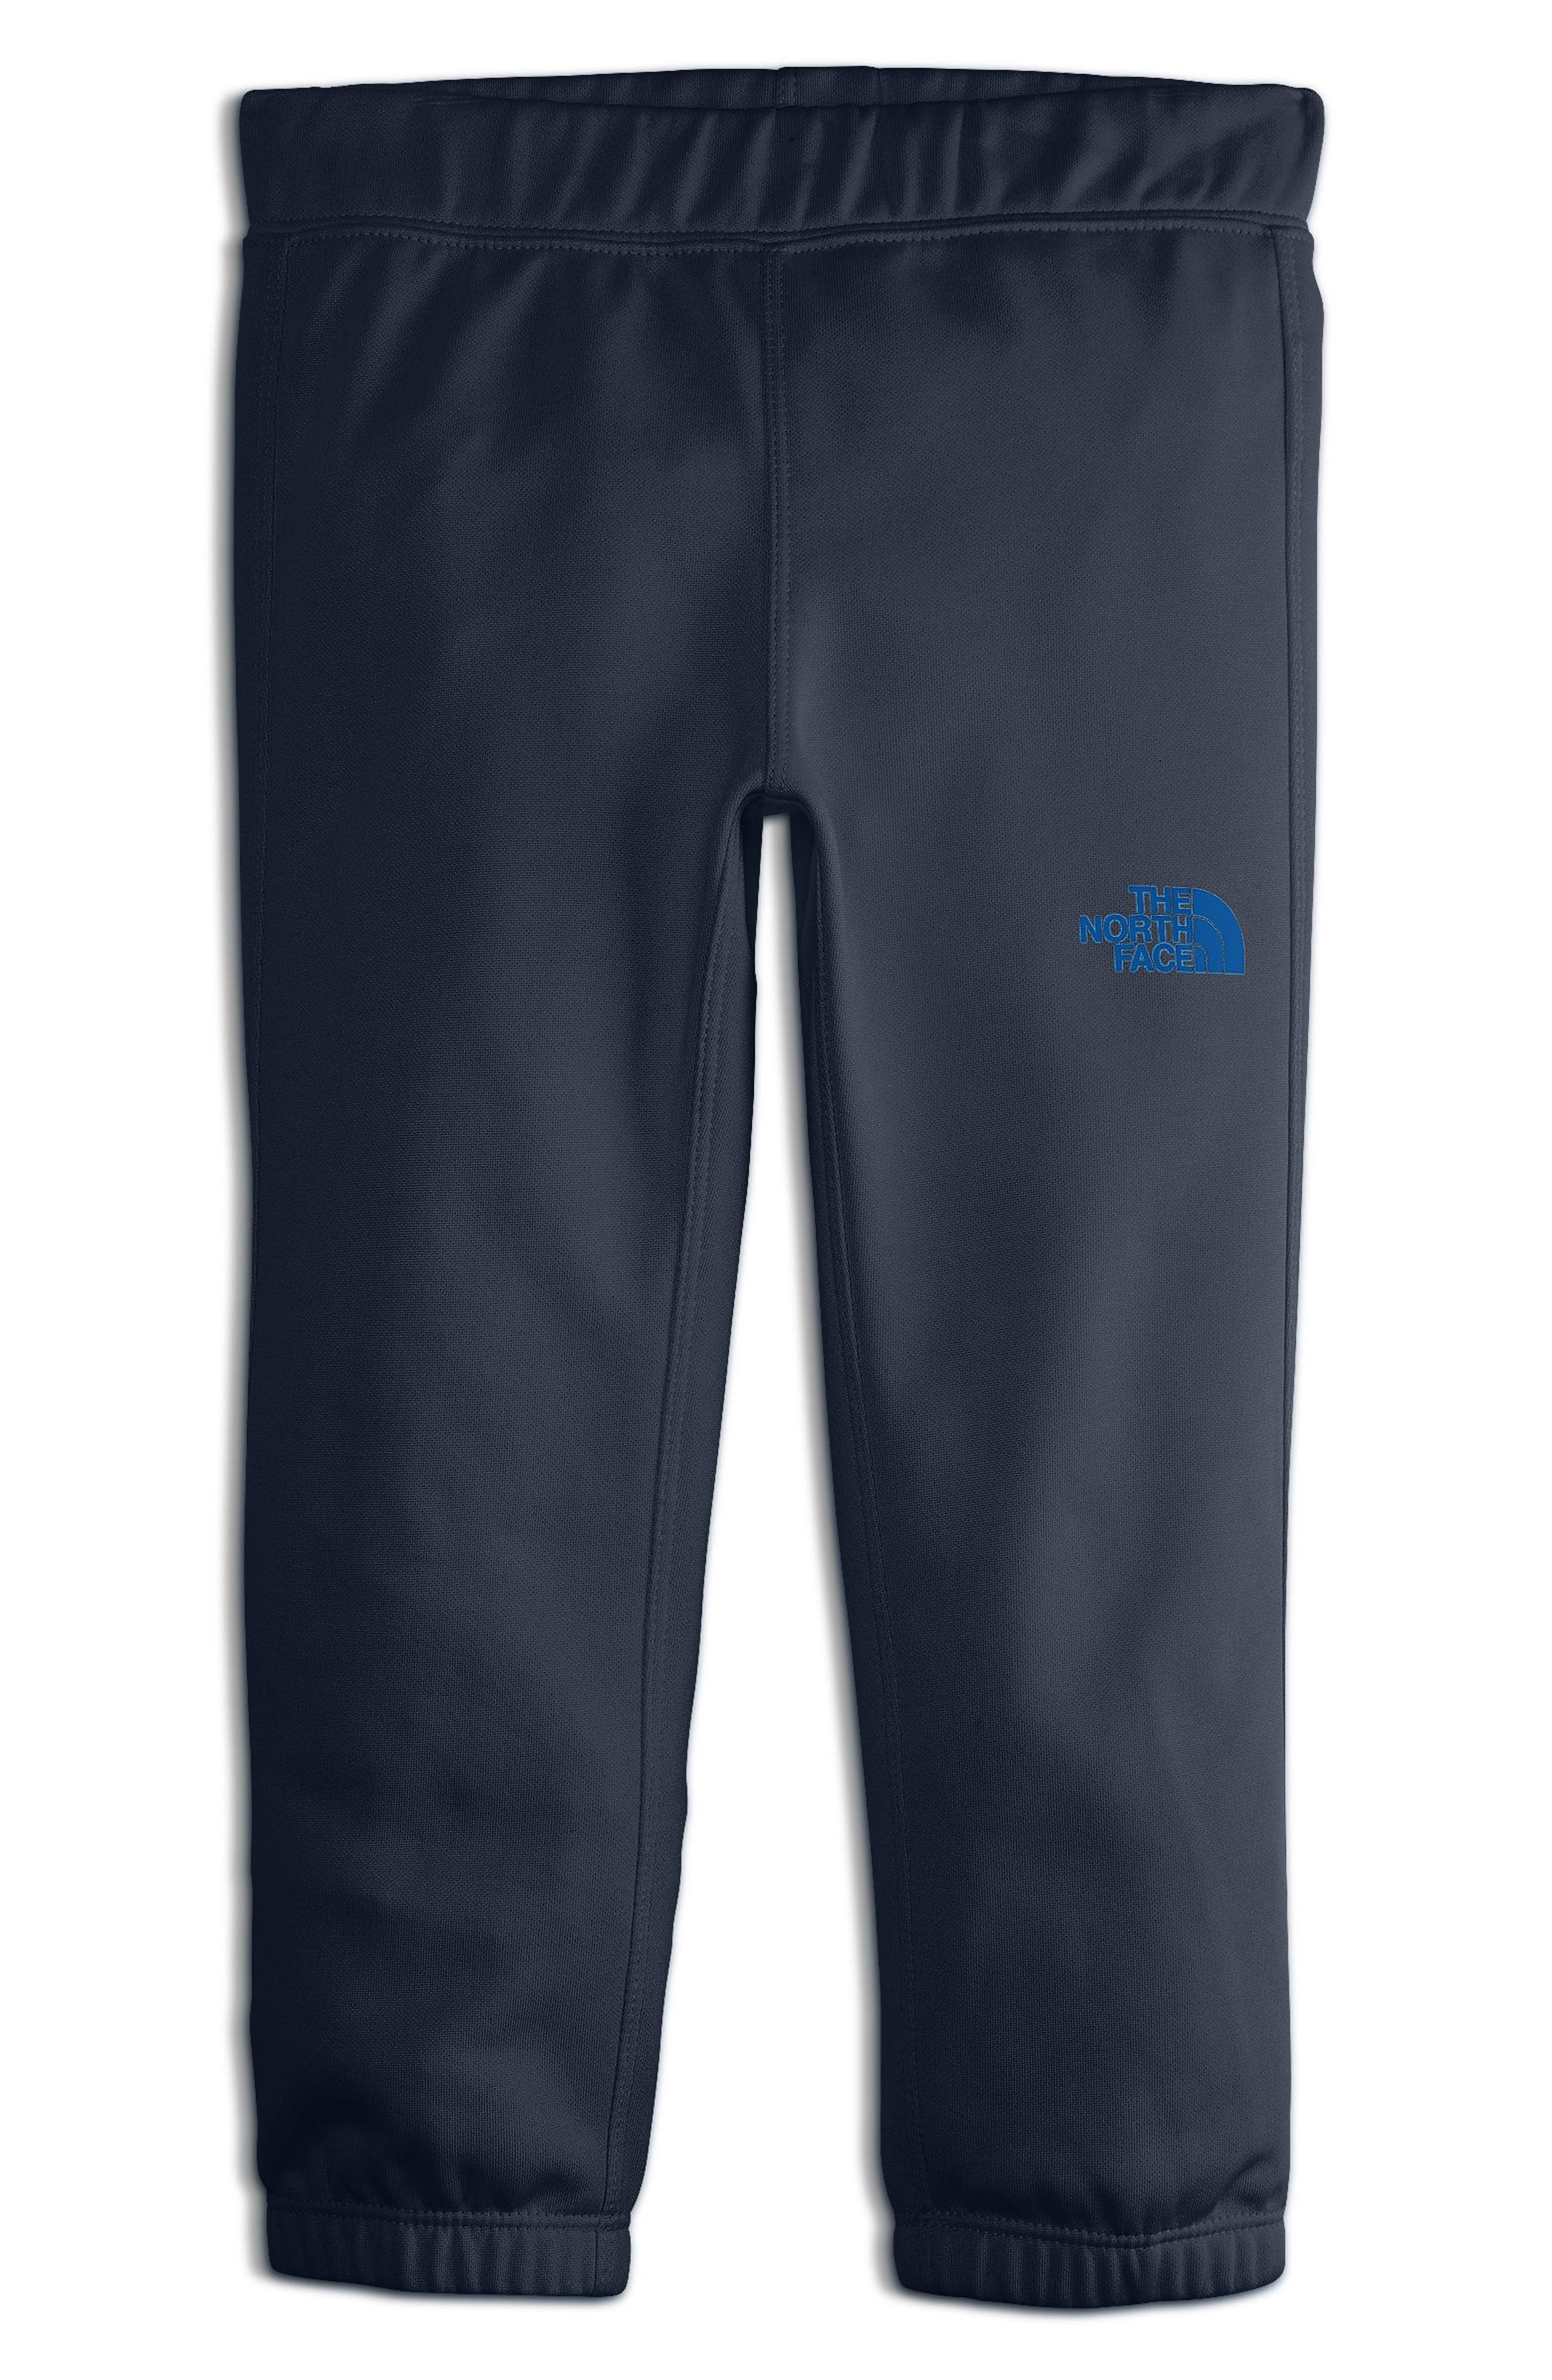 Alternate Image 1 Selected - The North Face Surgent Sweatpants (Toddler Boys & Little Boys)